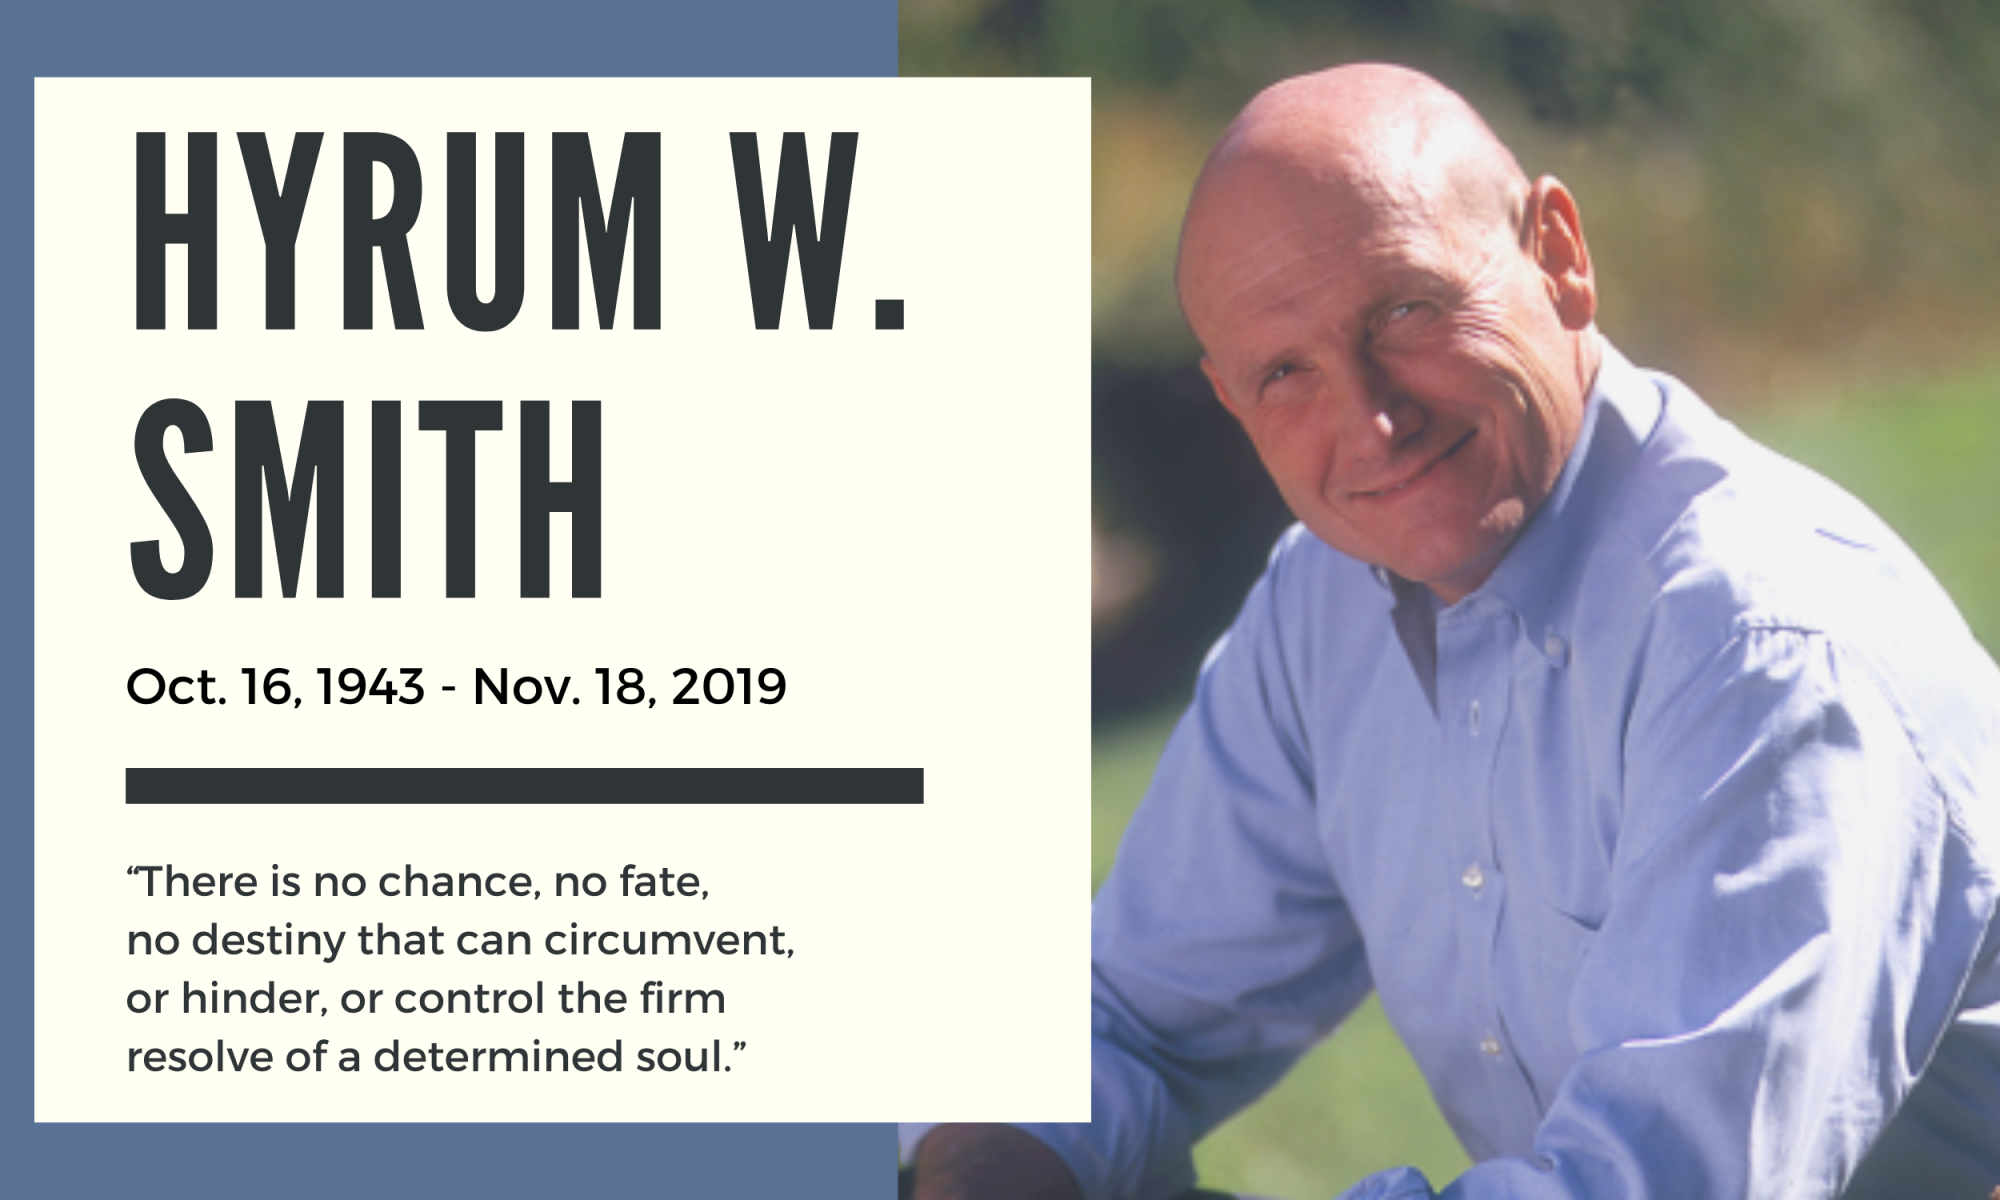 Hyrum W. Smith October 16, 1943 to November 18, 2019